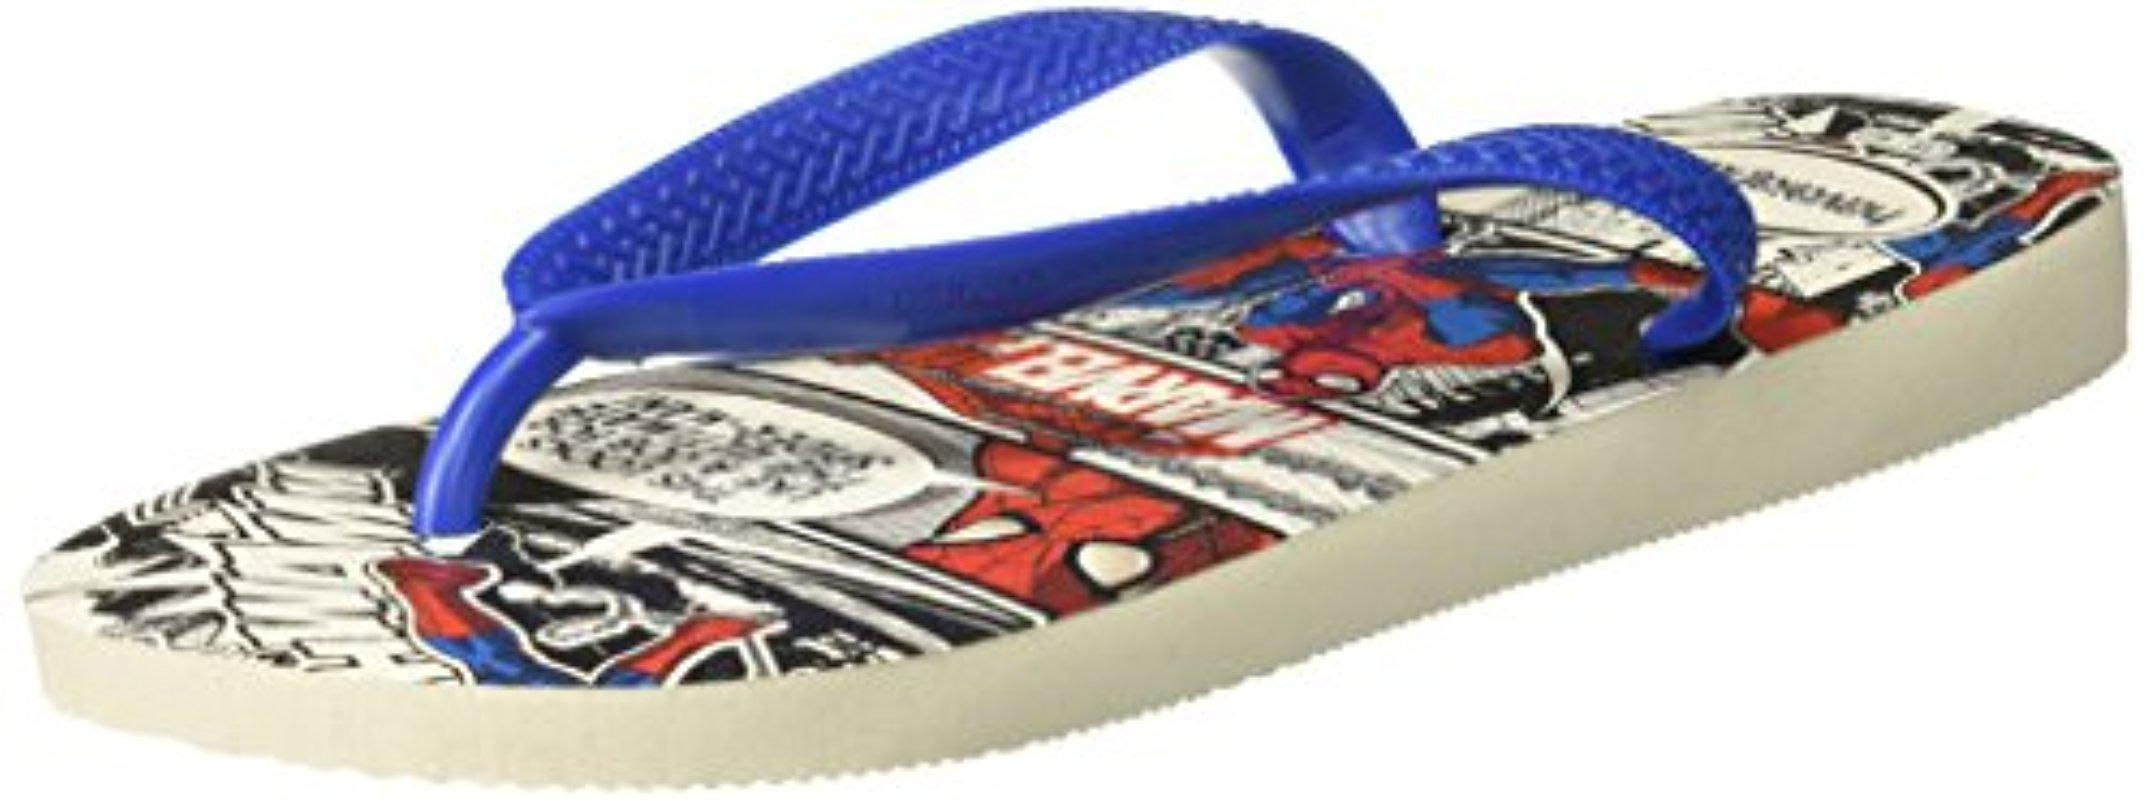 Unisex Adults Top Spiderman Flip Flops Havaianas cDwfaz